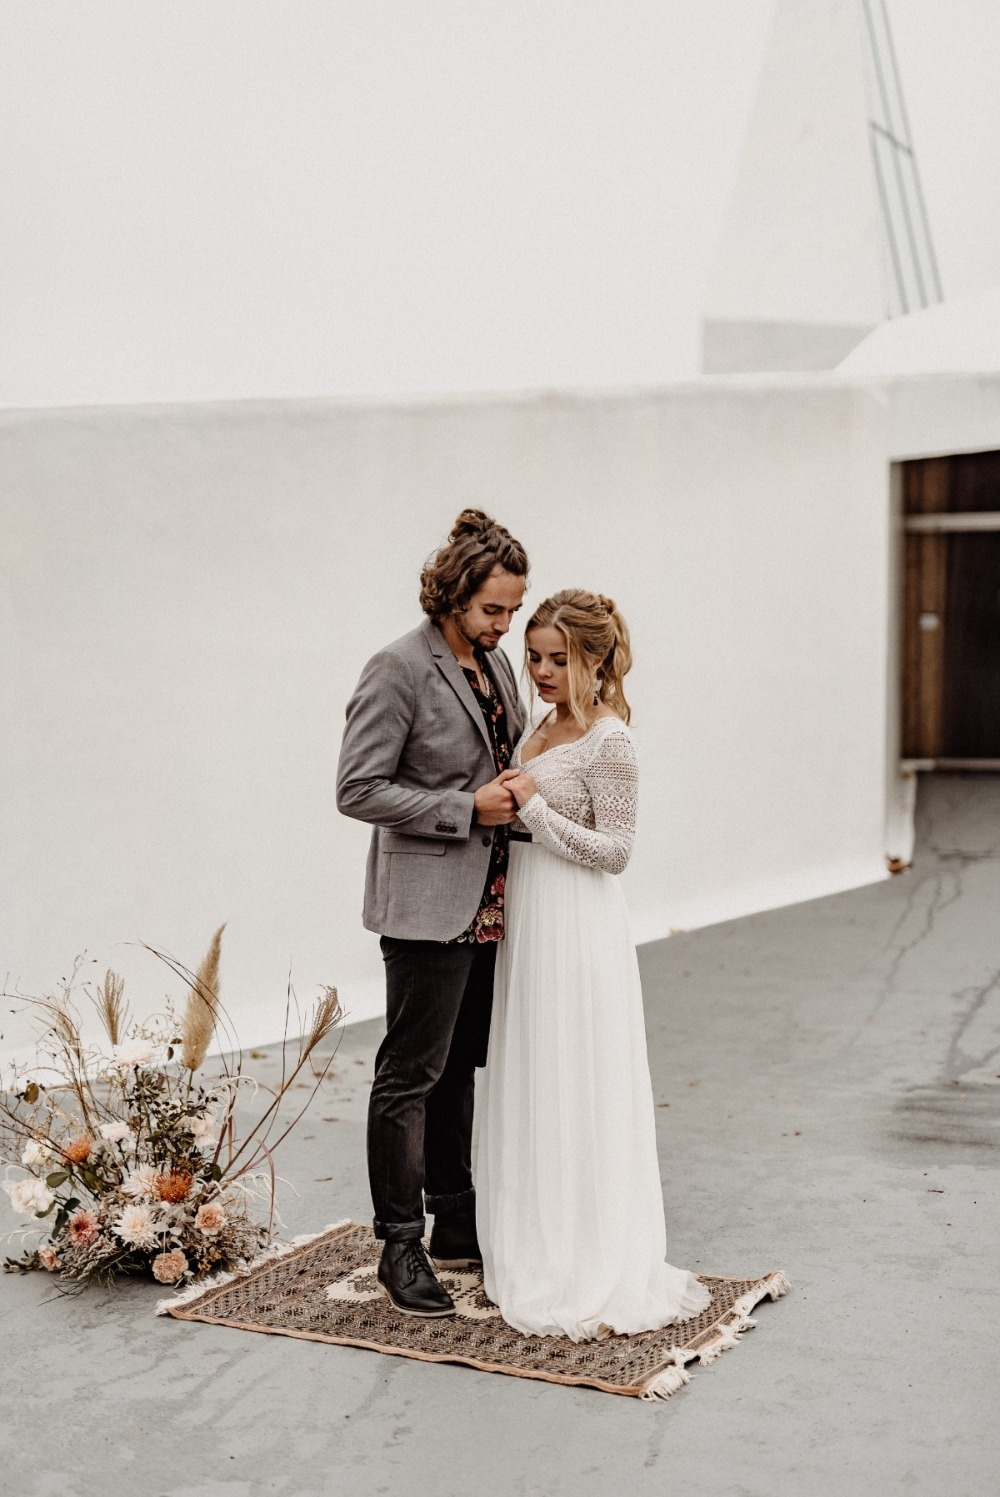 Minimal winter wedding inspiration